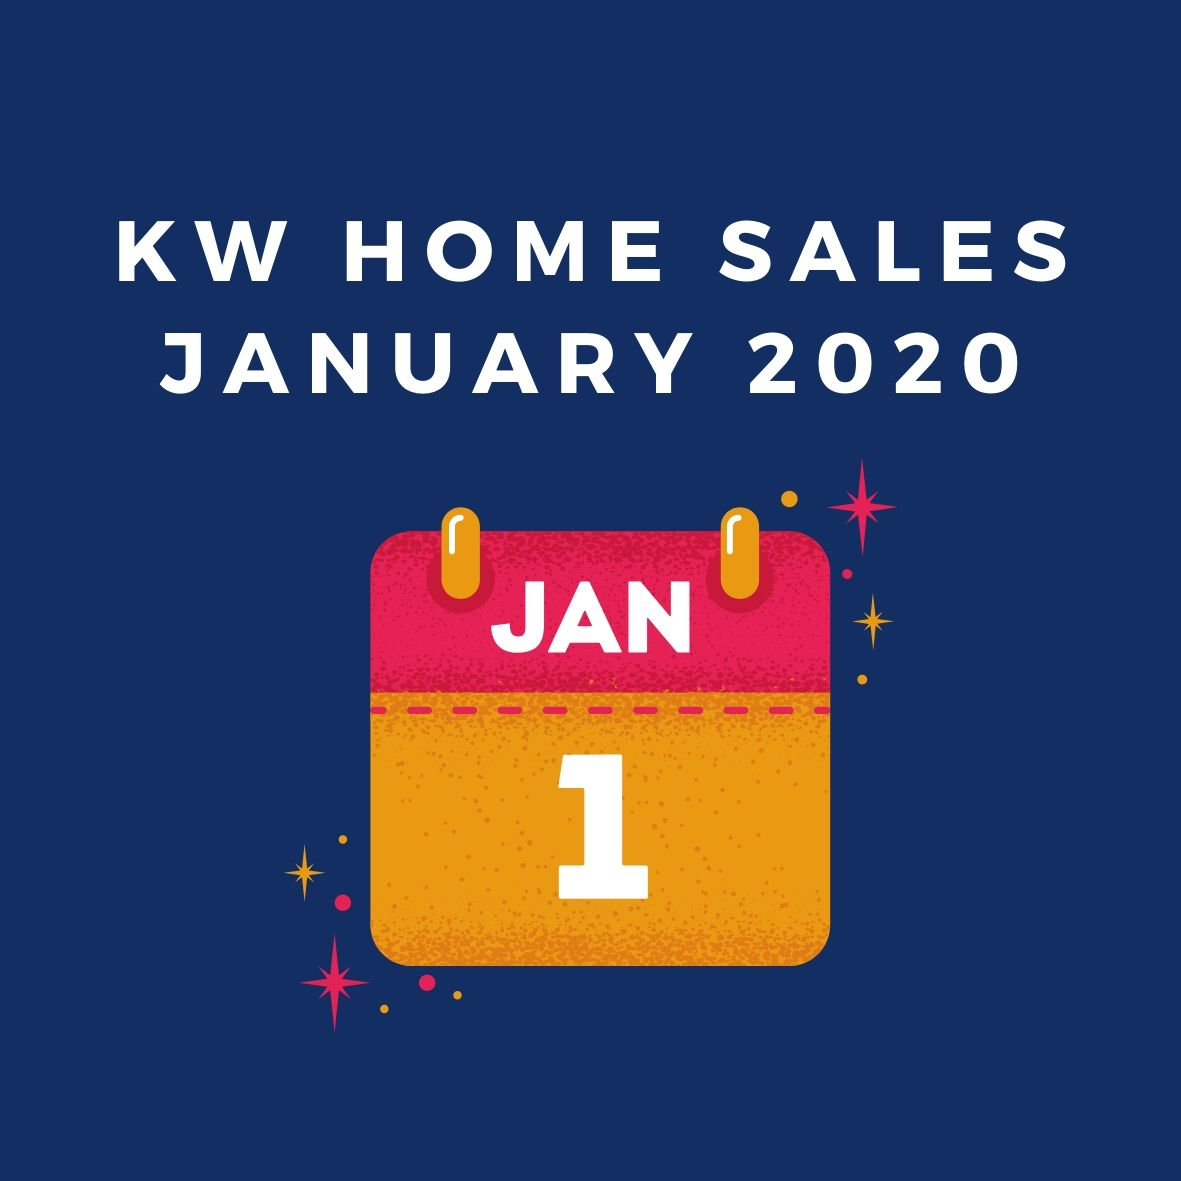 KW Home Sales January 2020